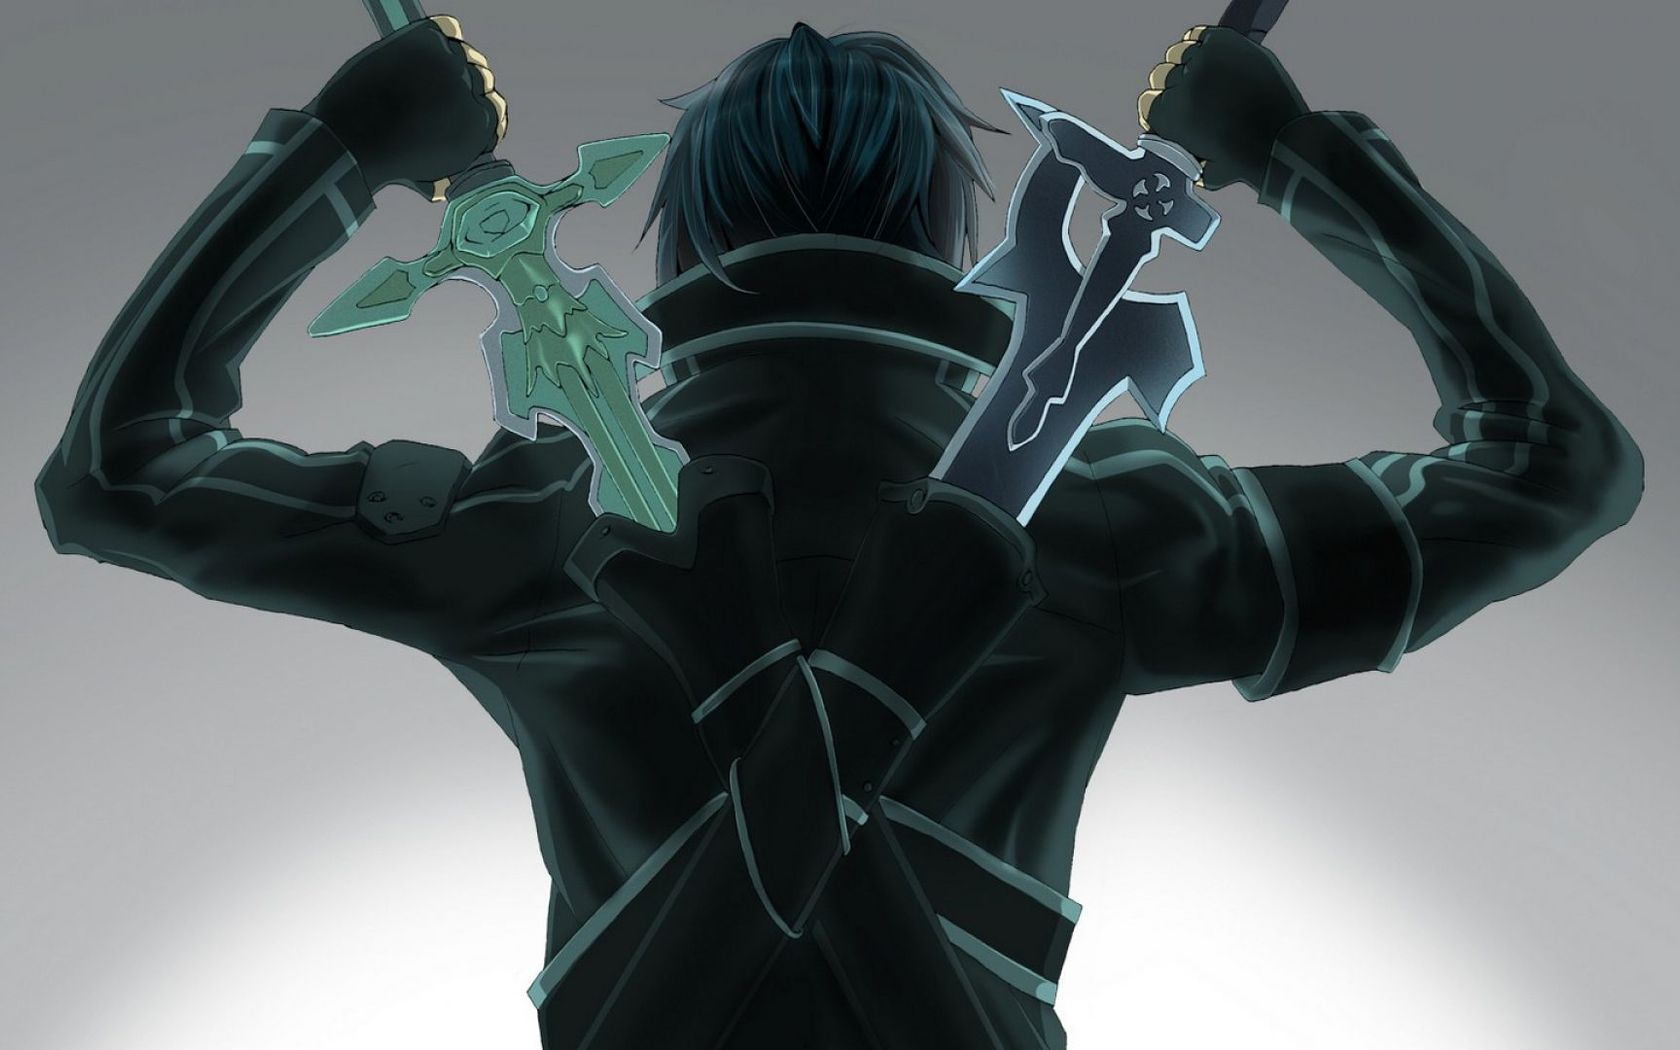 Cool Kirito [SAO] wallpaper works well for a phone background 1680x1050